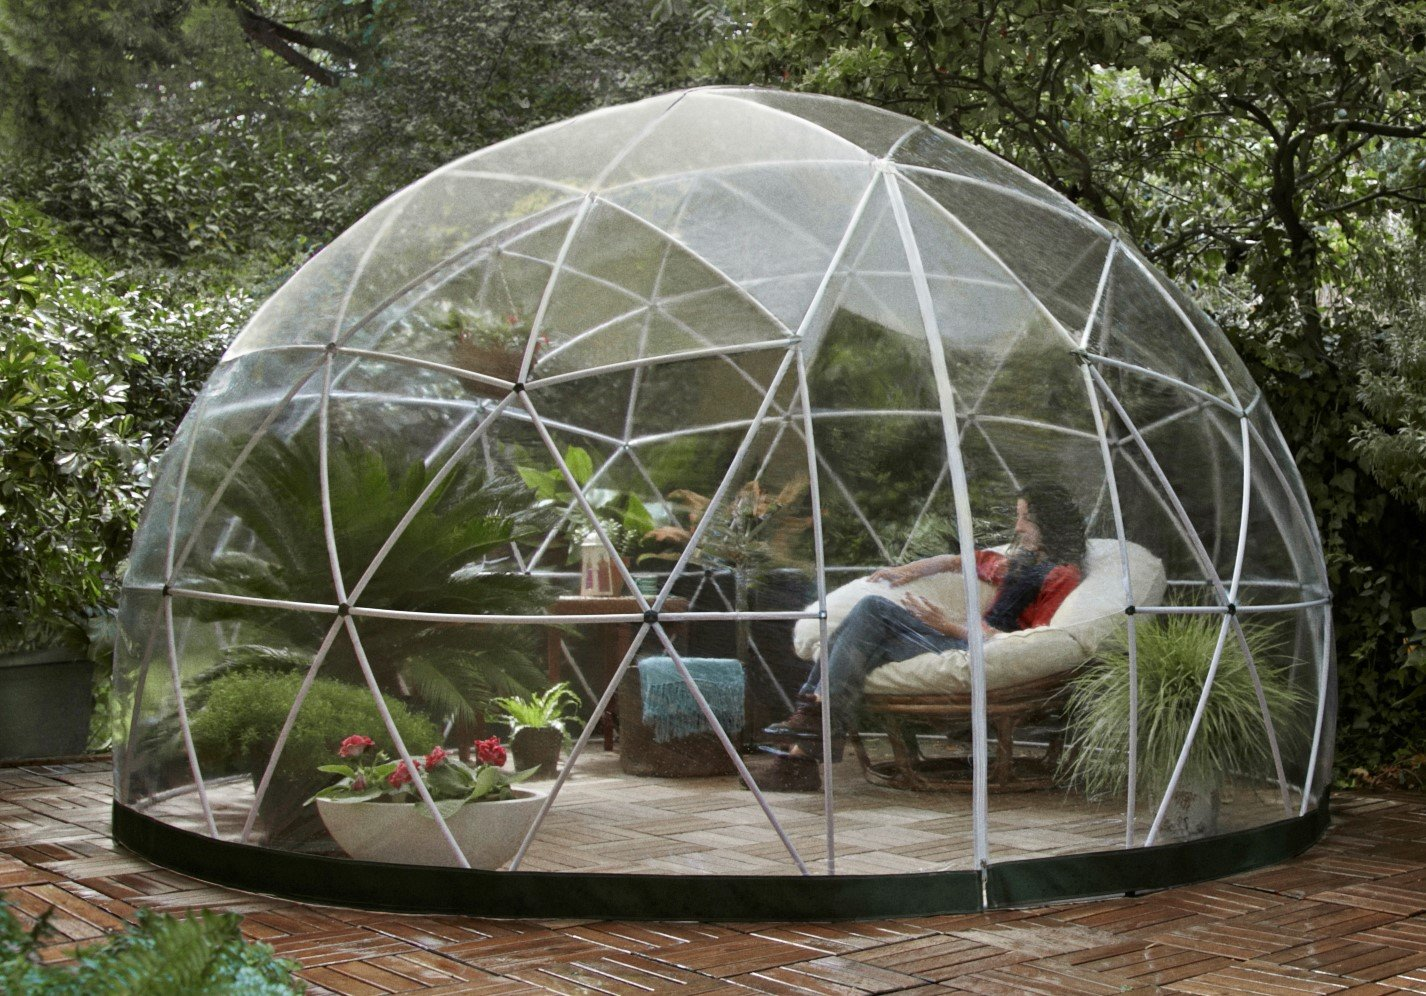 Garden Igloo 33244 Clear Greenhouse 142 X 142 X 87 inches